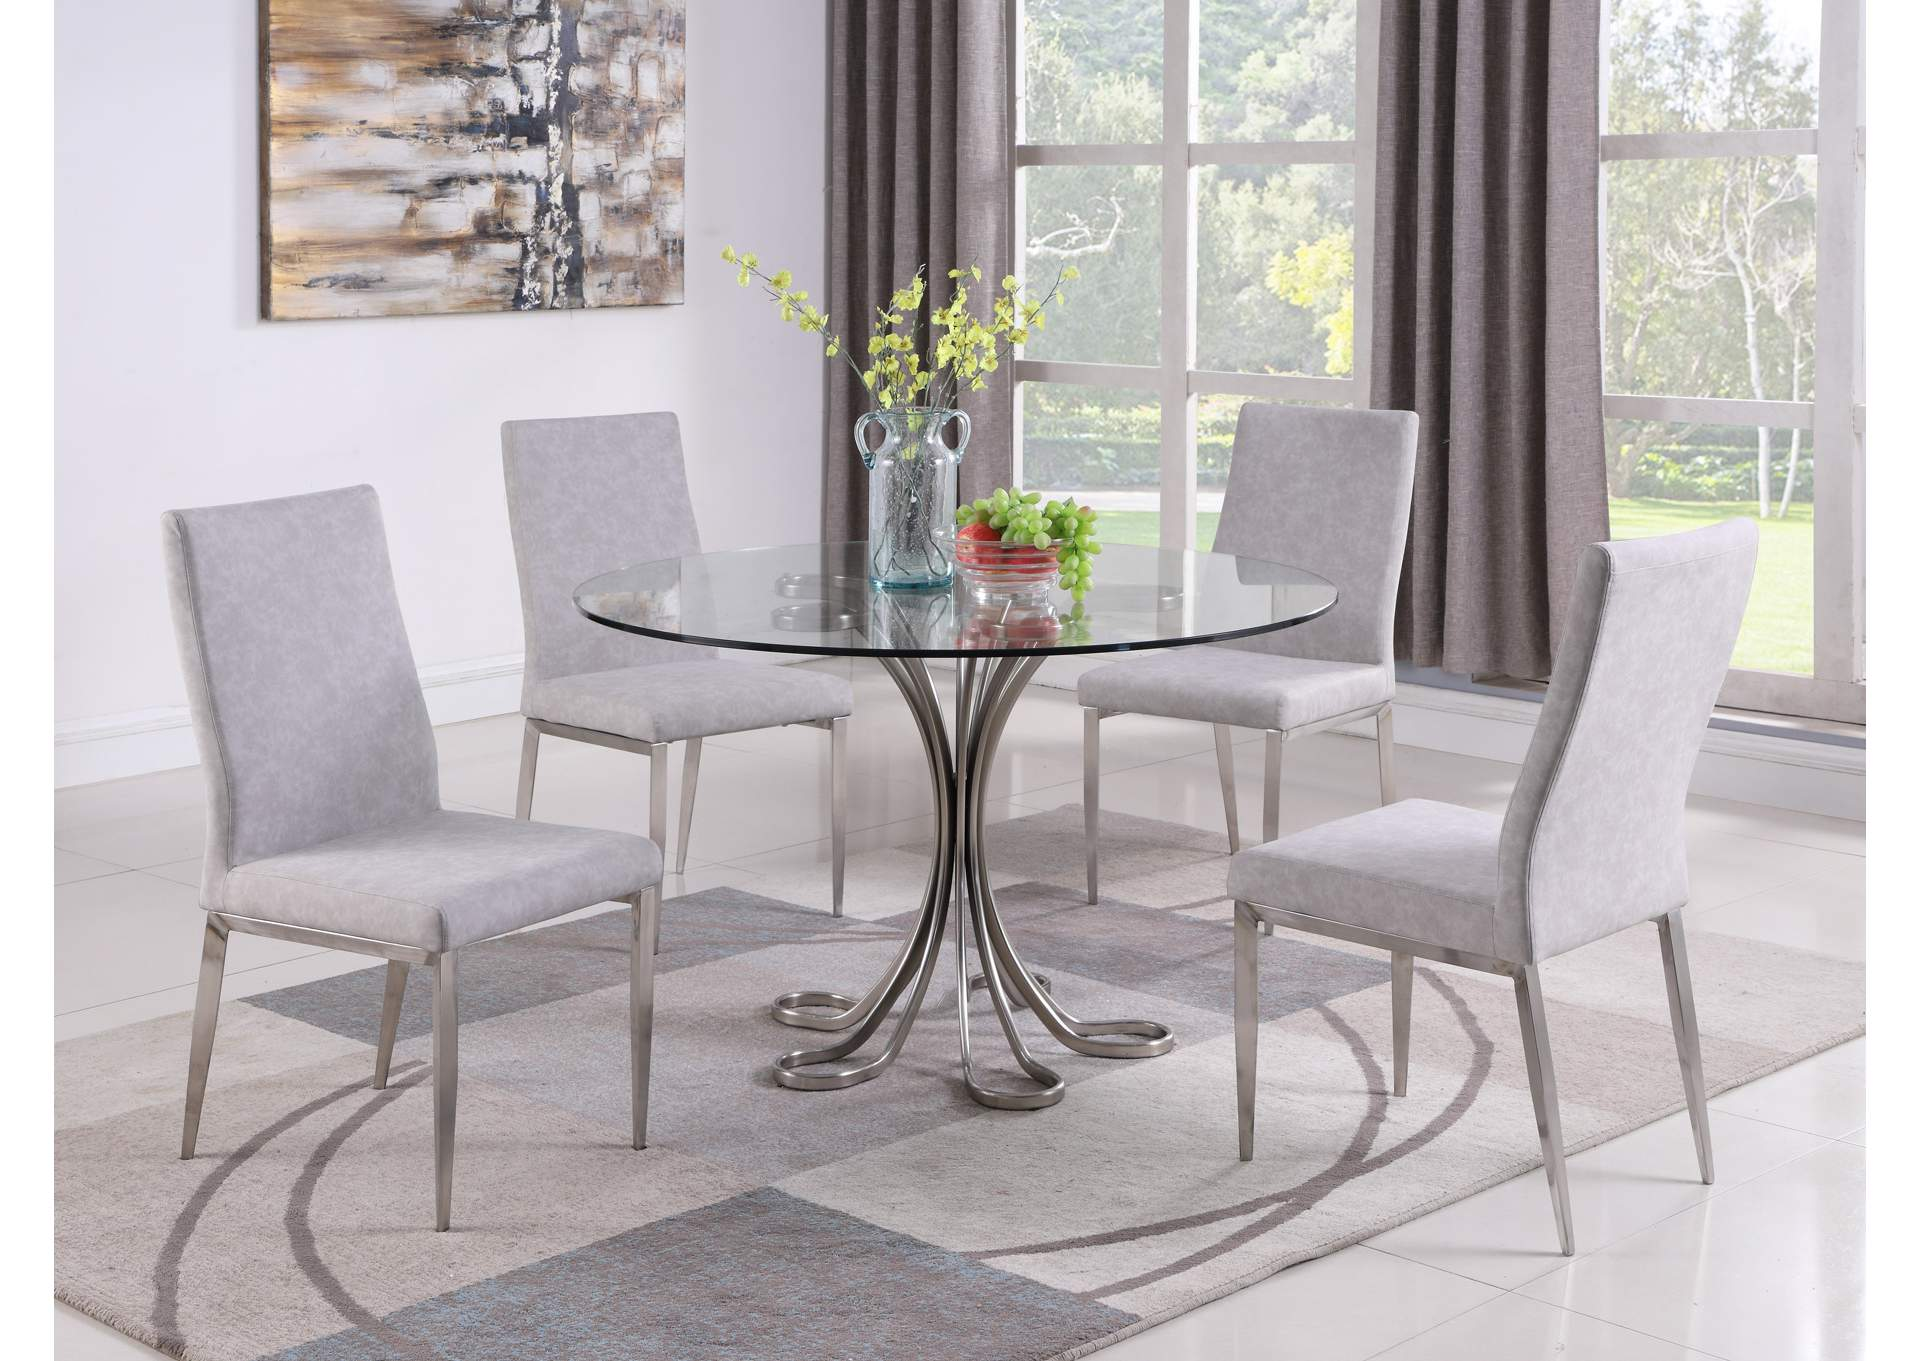 Desiree Grey Dining Set w/ Glass Table & Upholstered Chairs,Chintaly Imports